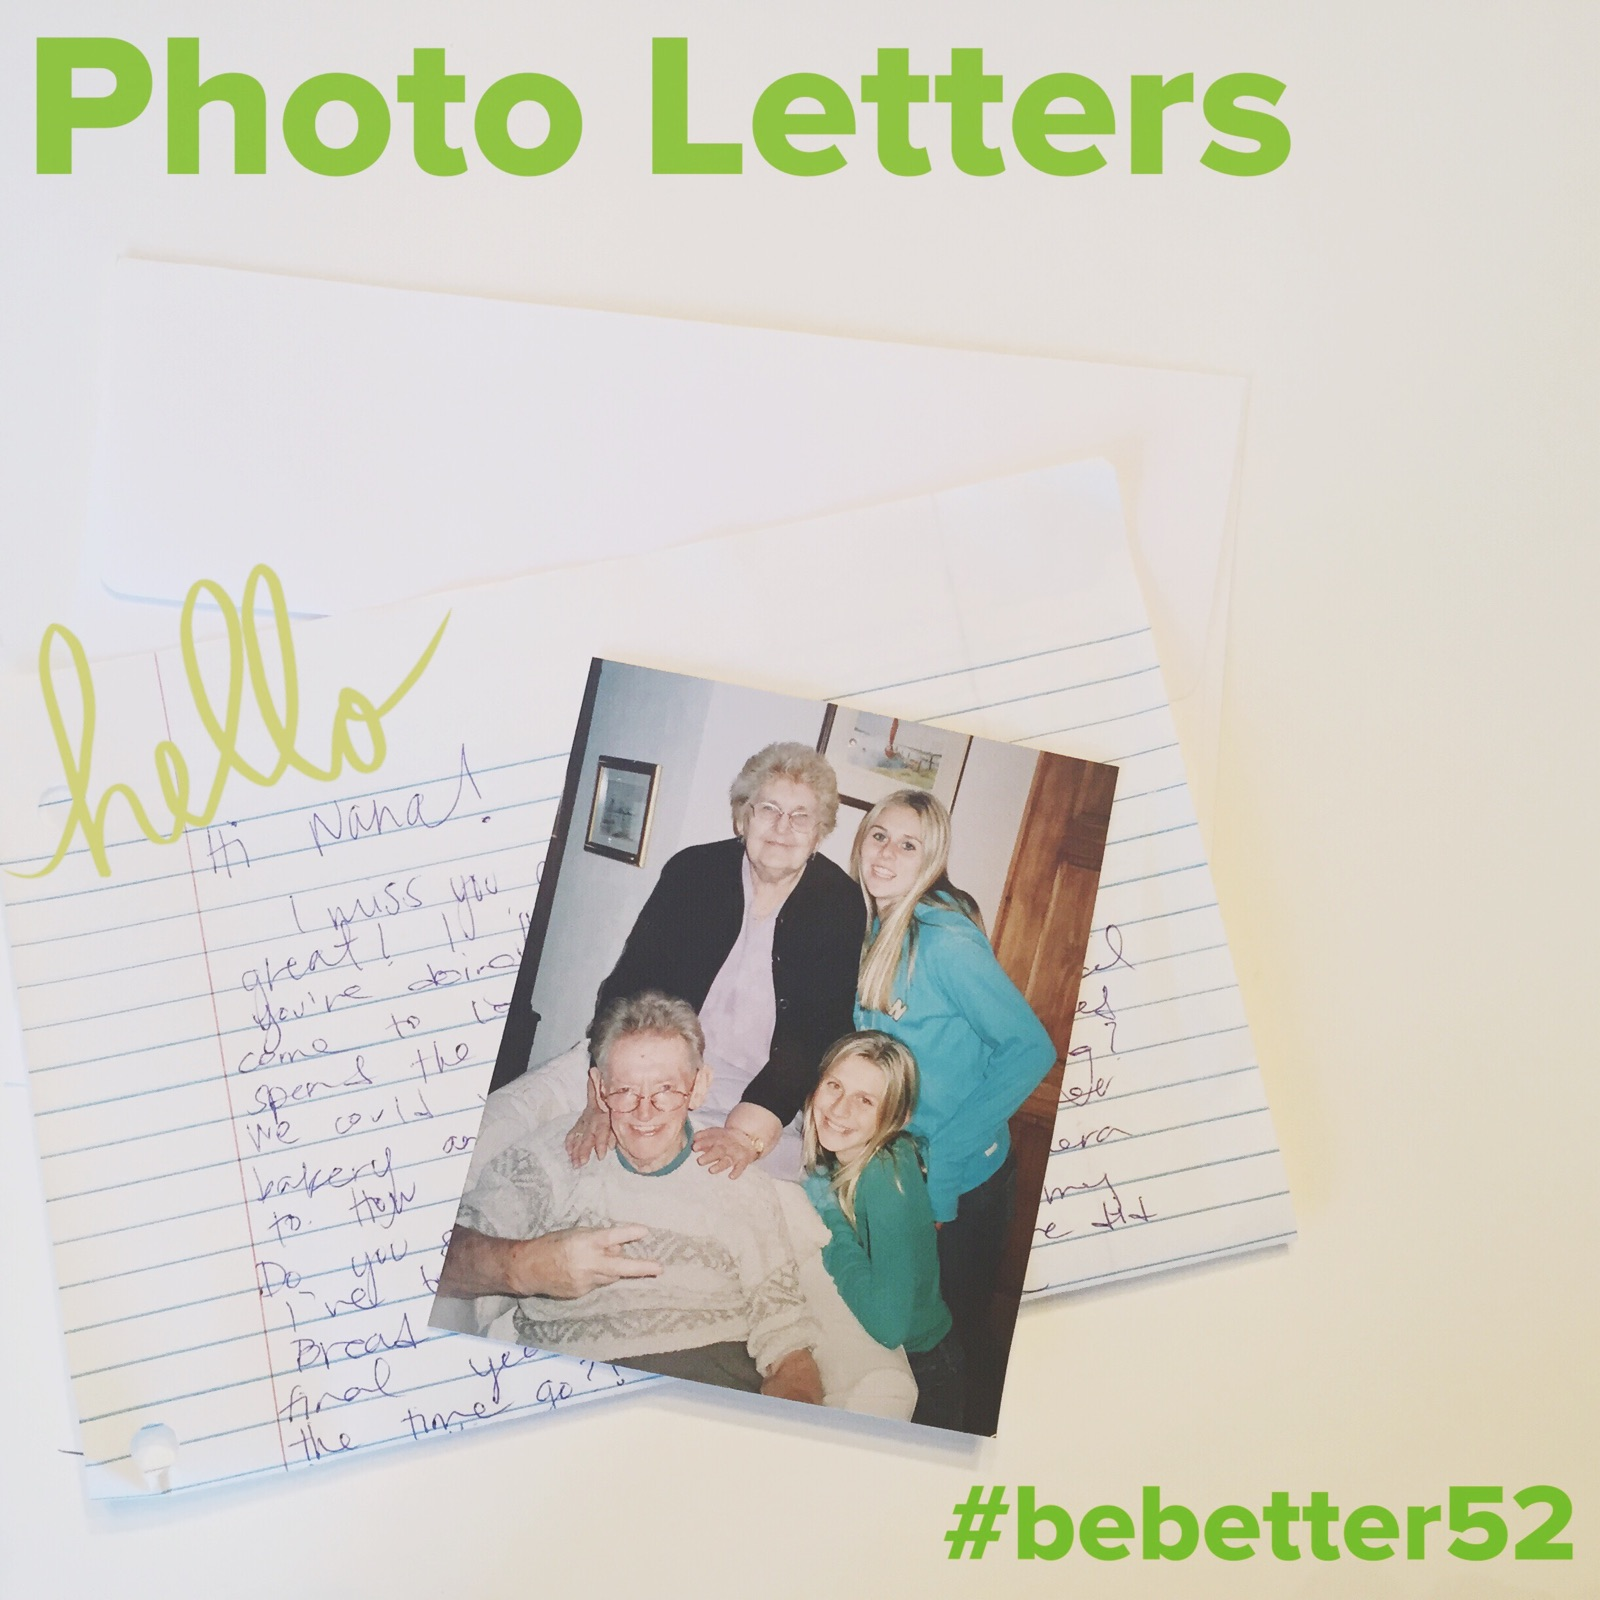 photo letters!